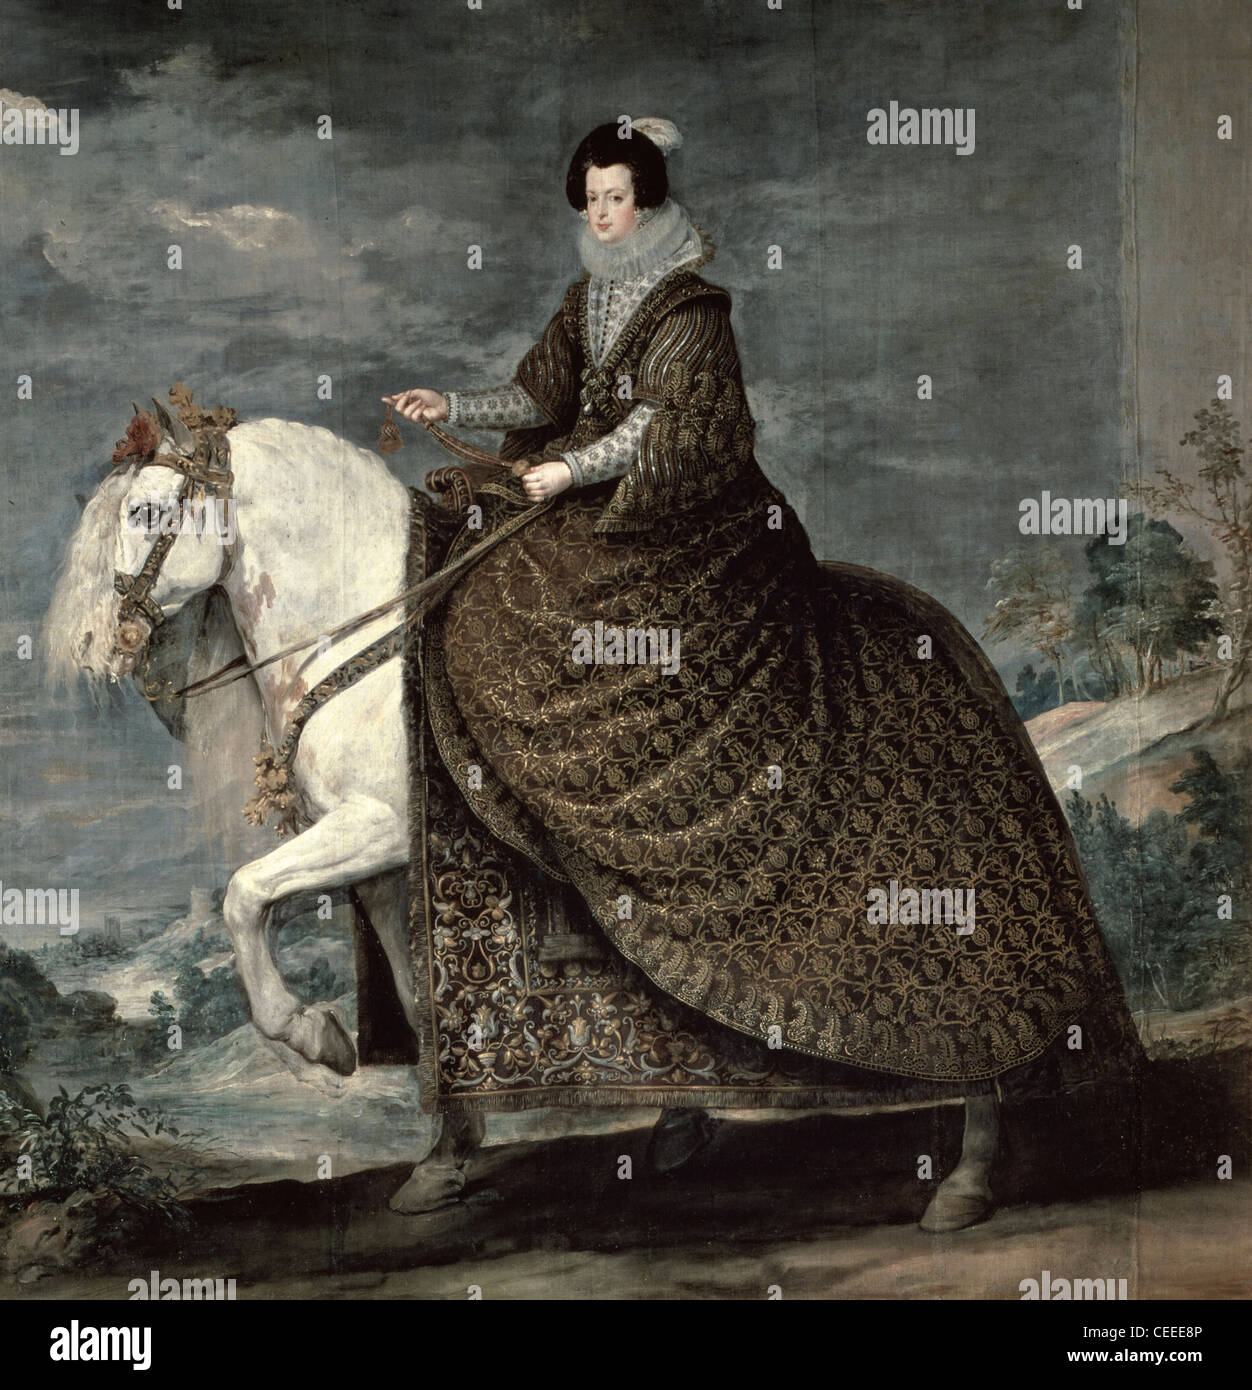 Diego Velázquez (1599-1660) Spanish school Portrait of Queen Isabella on horseback 1635 Oil on canvas - Stock Image